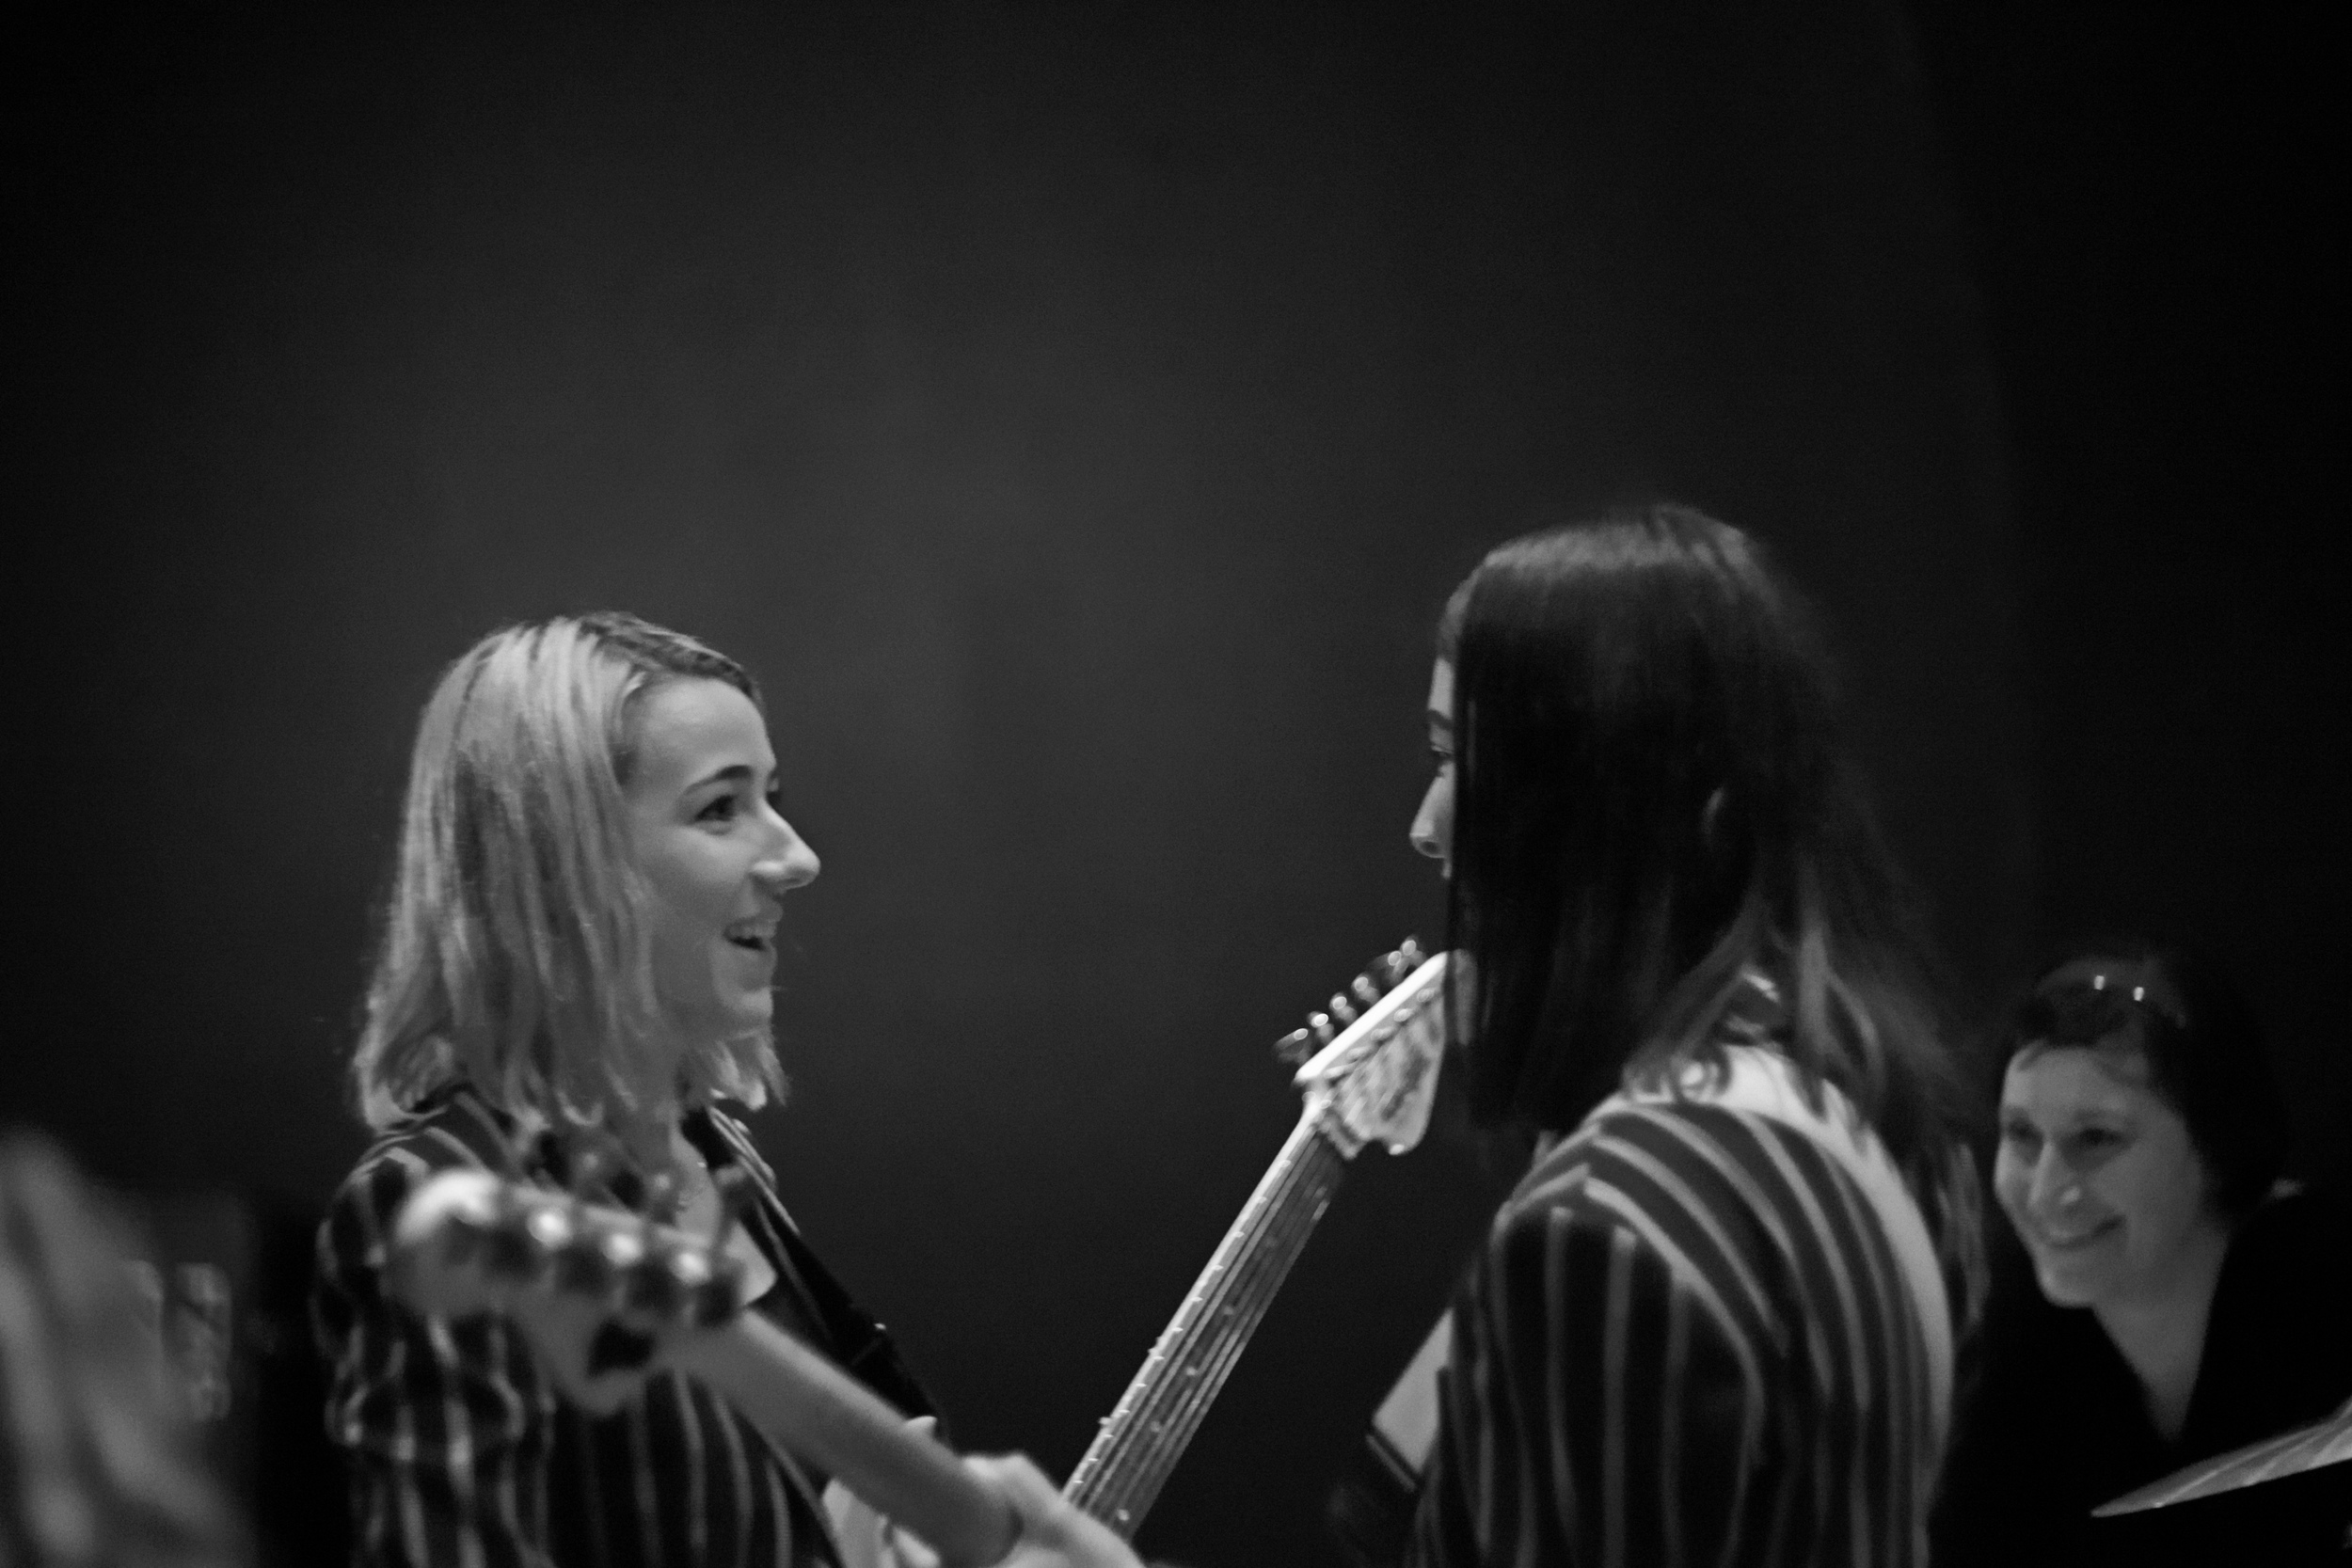 Favorite shot of the night. I like the subtletyof the light coming off the wall behind them. And all three of them look so sincerely happy and unaffected, like they forgot they were onstage in front of an audience. Shutter 1/50, f/1.5, ISO: 1000.